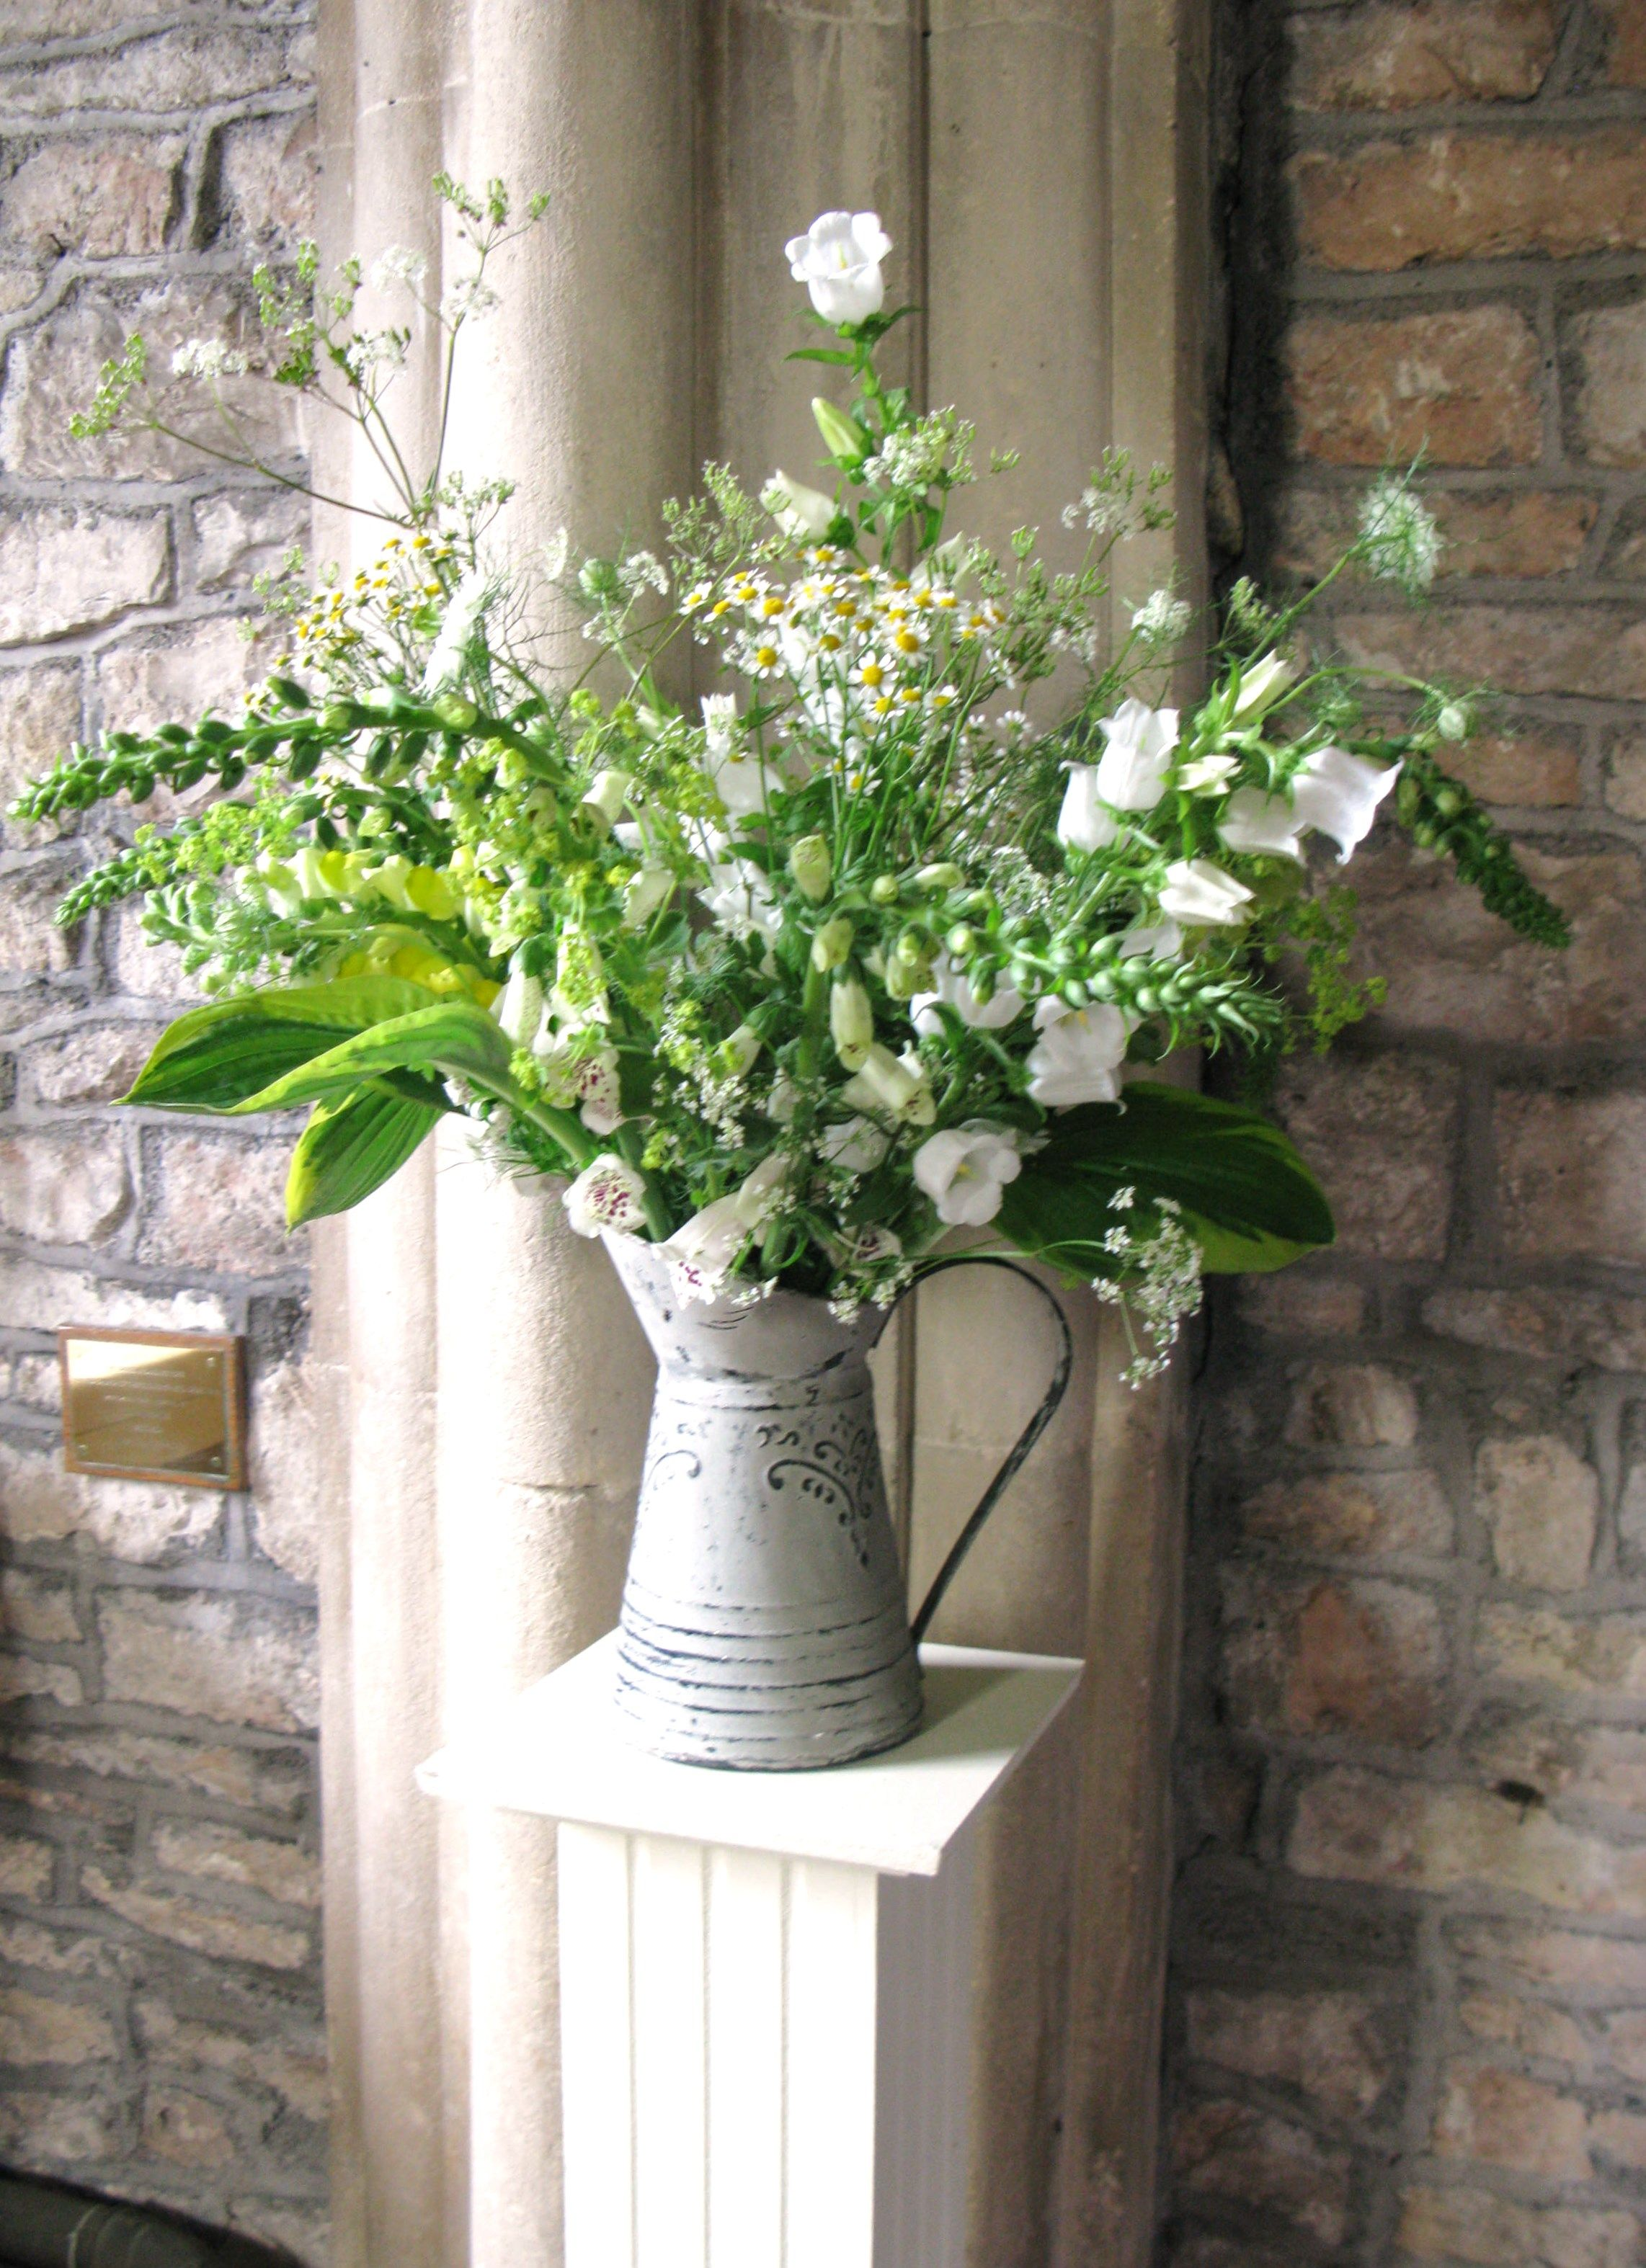 Rustic Jugs Of Wild Style Country Flowers Were Used Instead Of